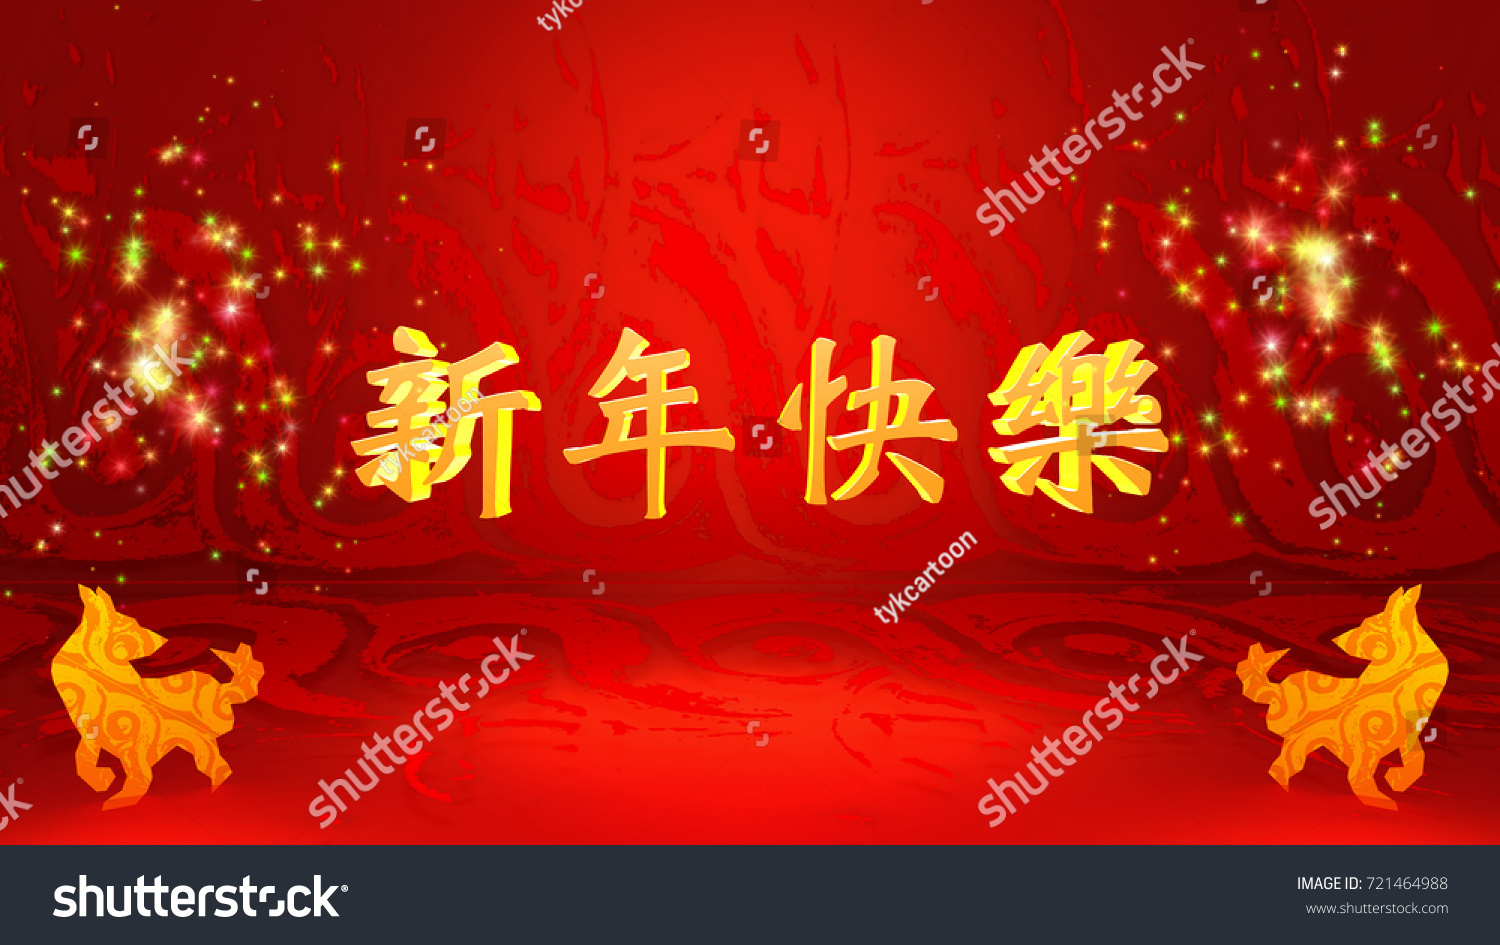 Traditional Chinese New Year Greetings